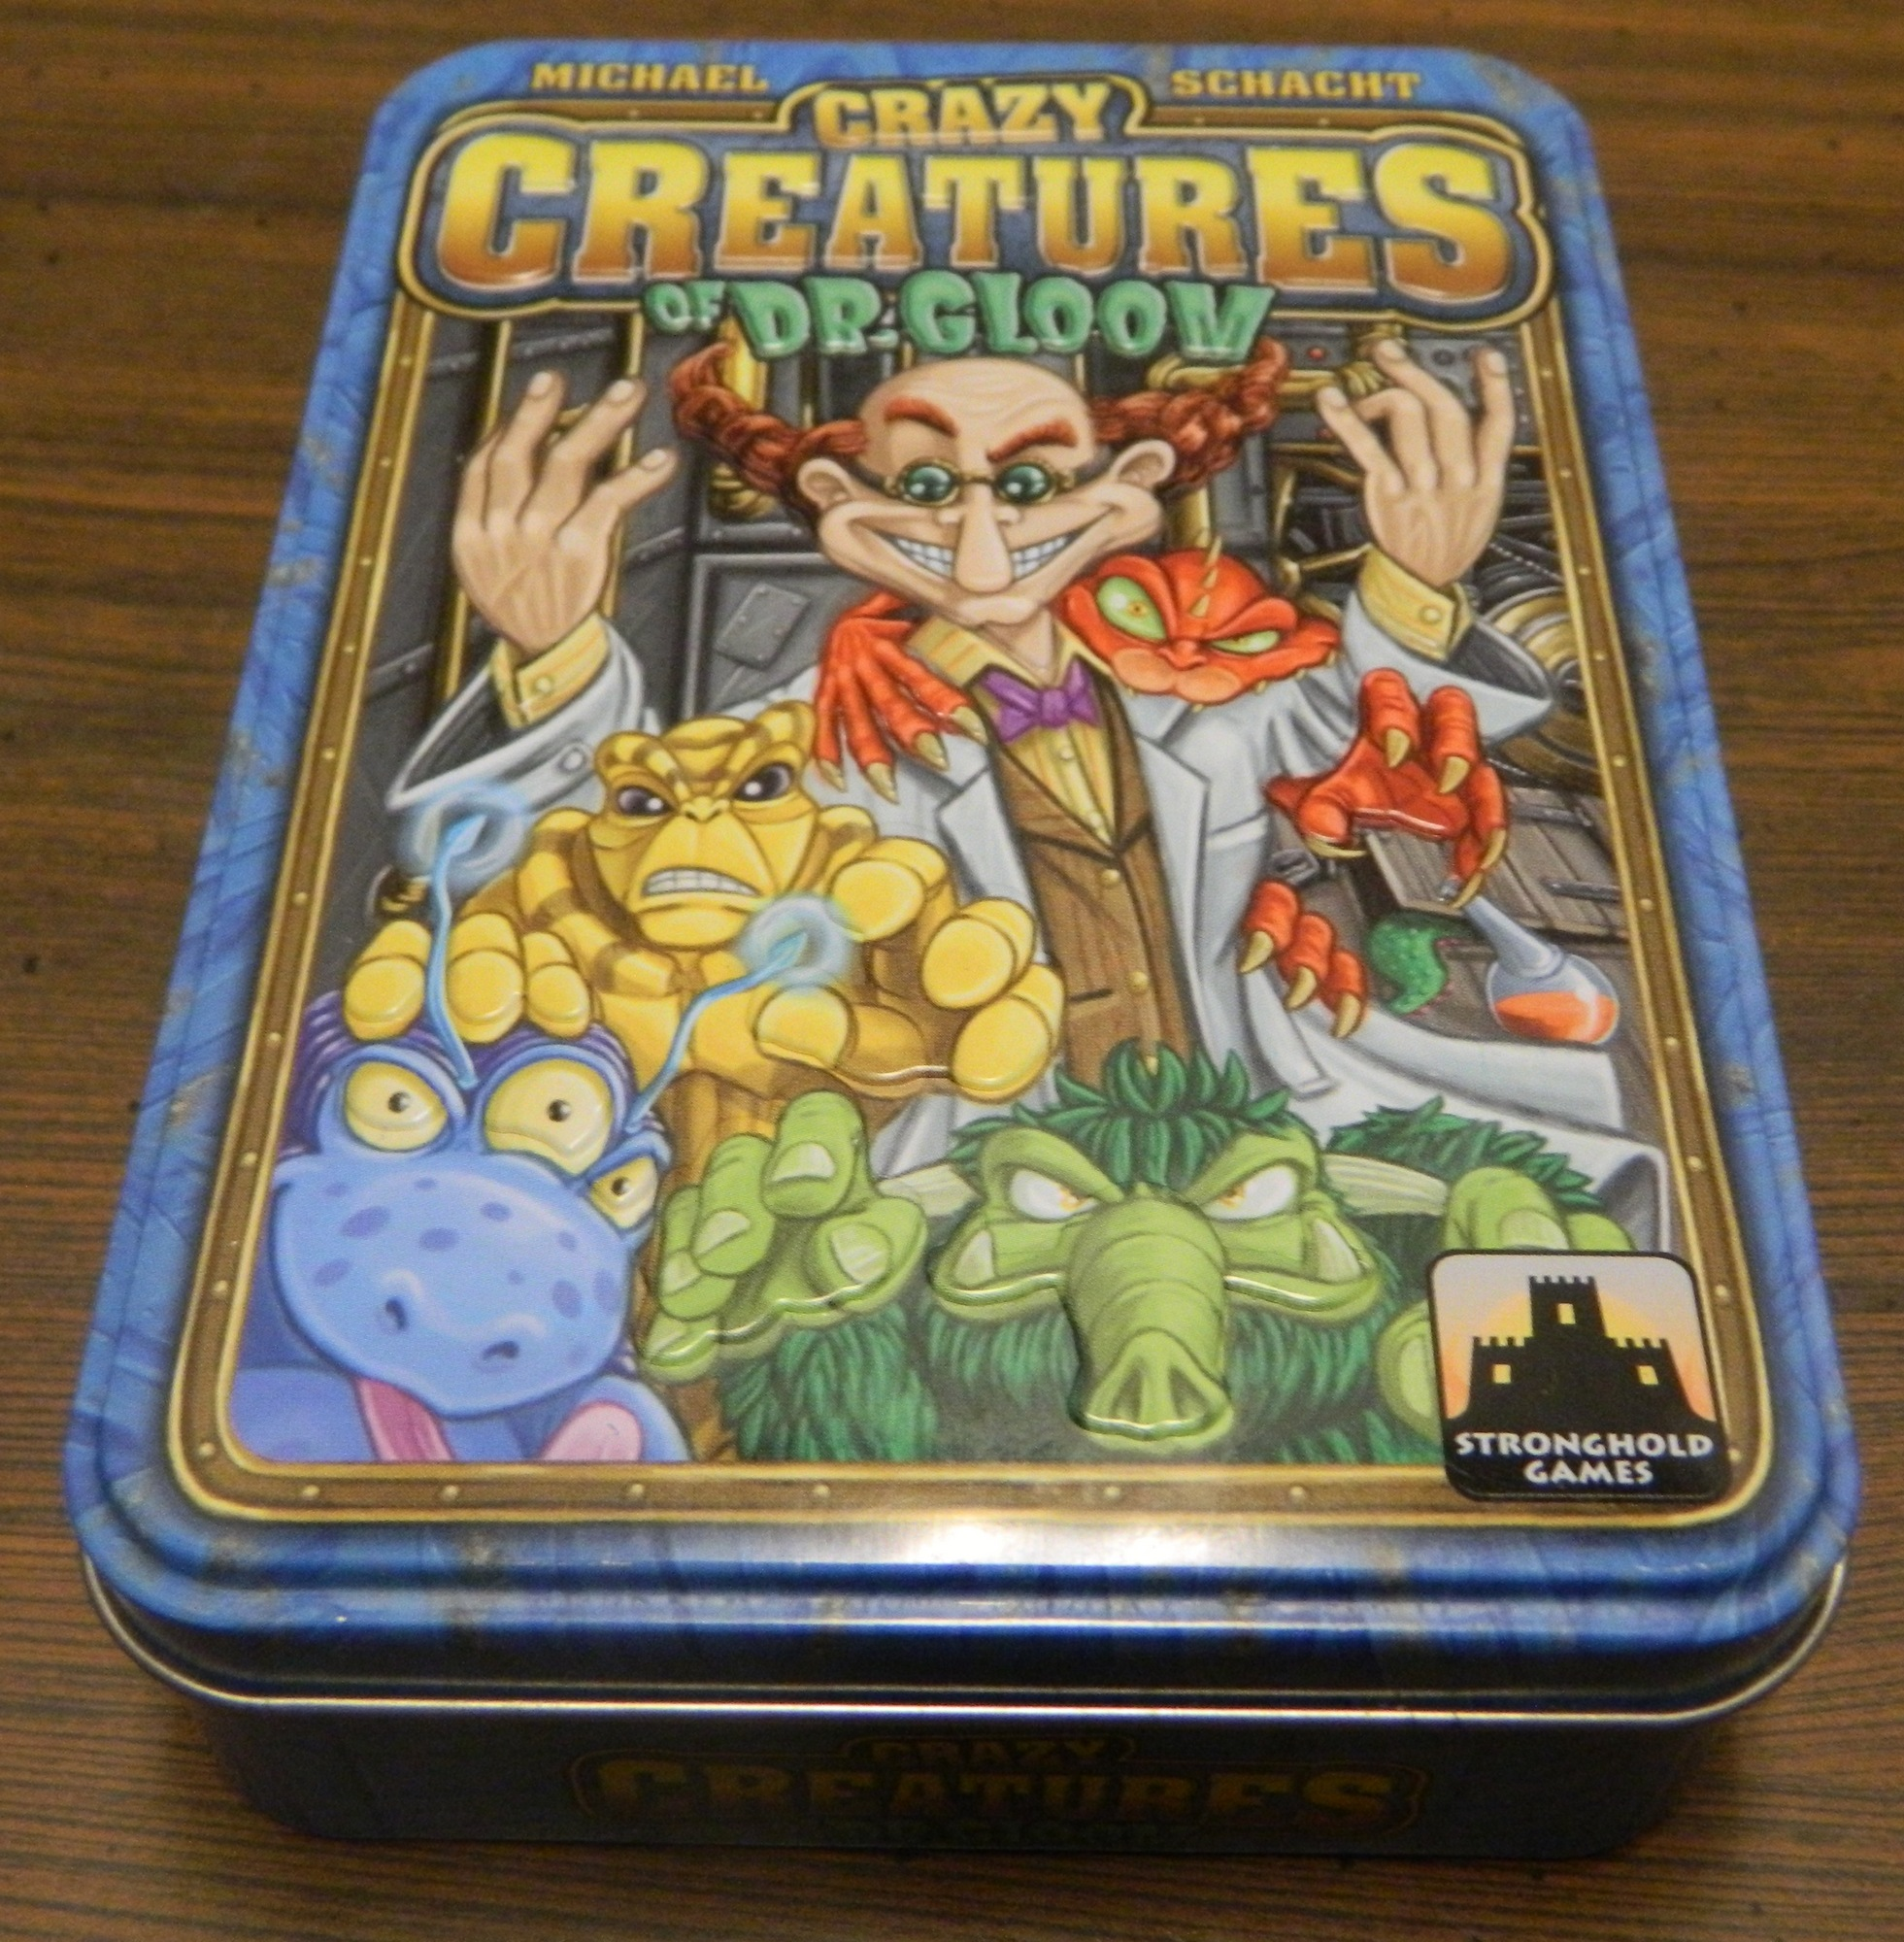 Box for Crazy Creatures of Dr Gloom